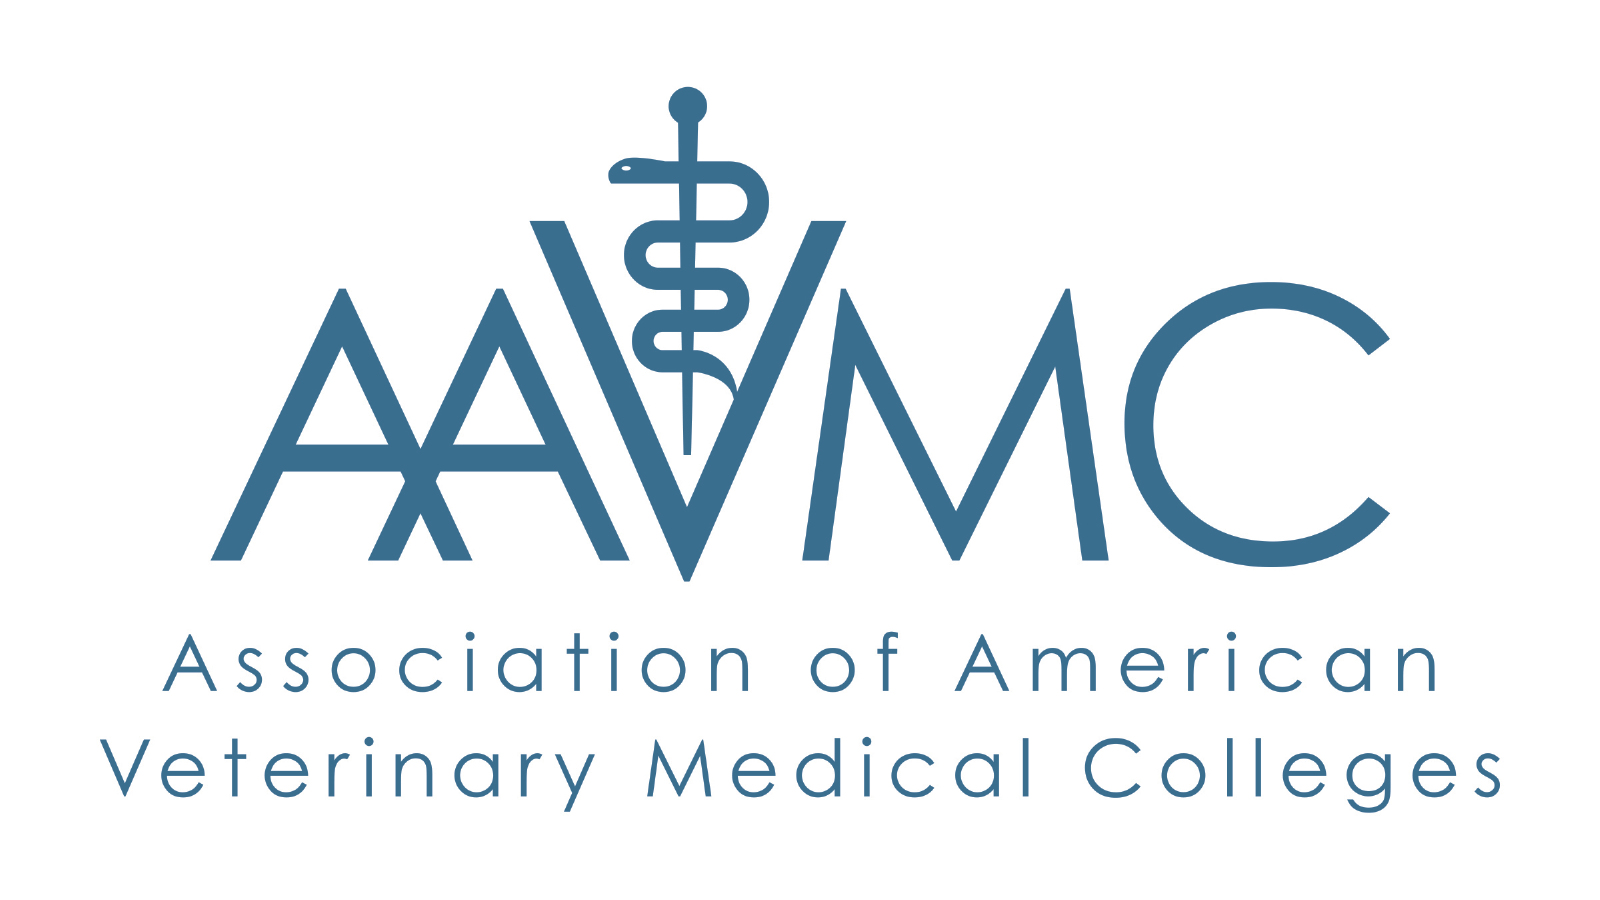 AAVMC Website